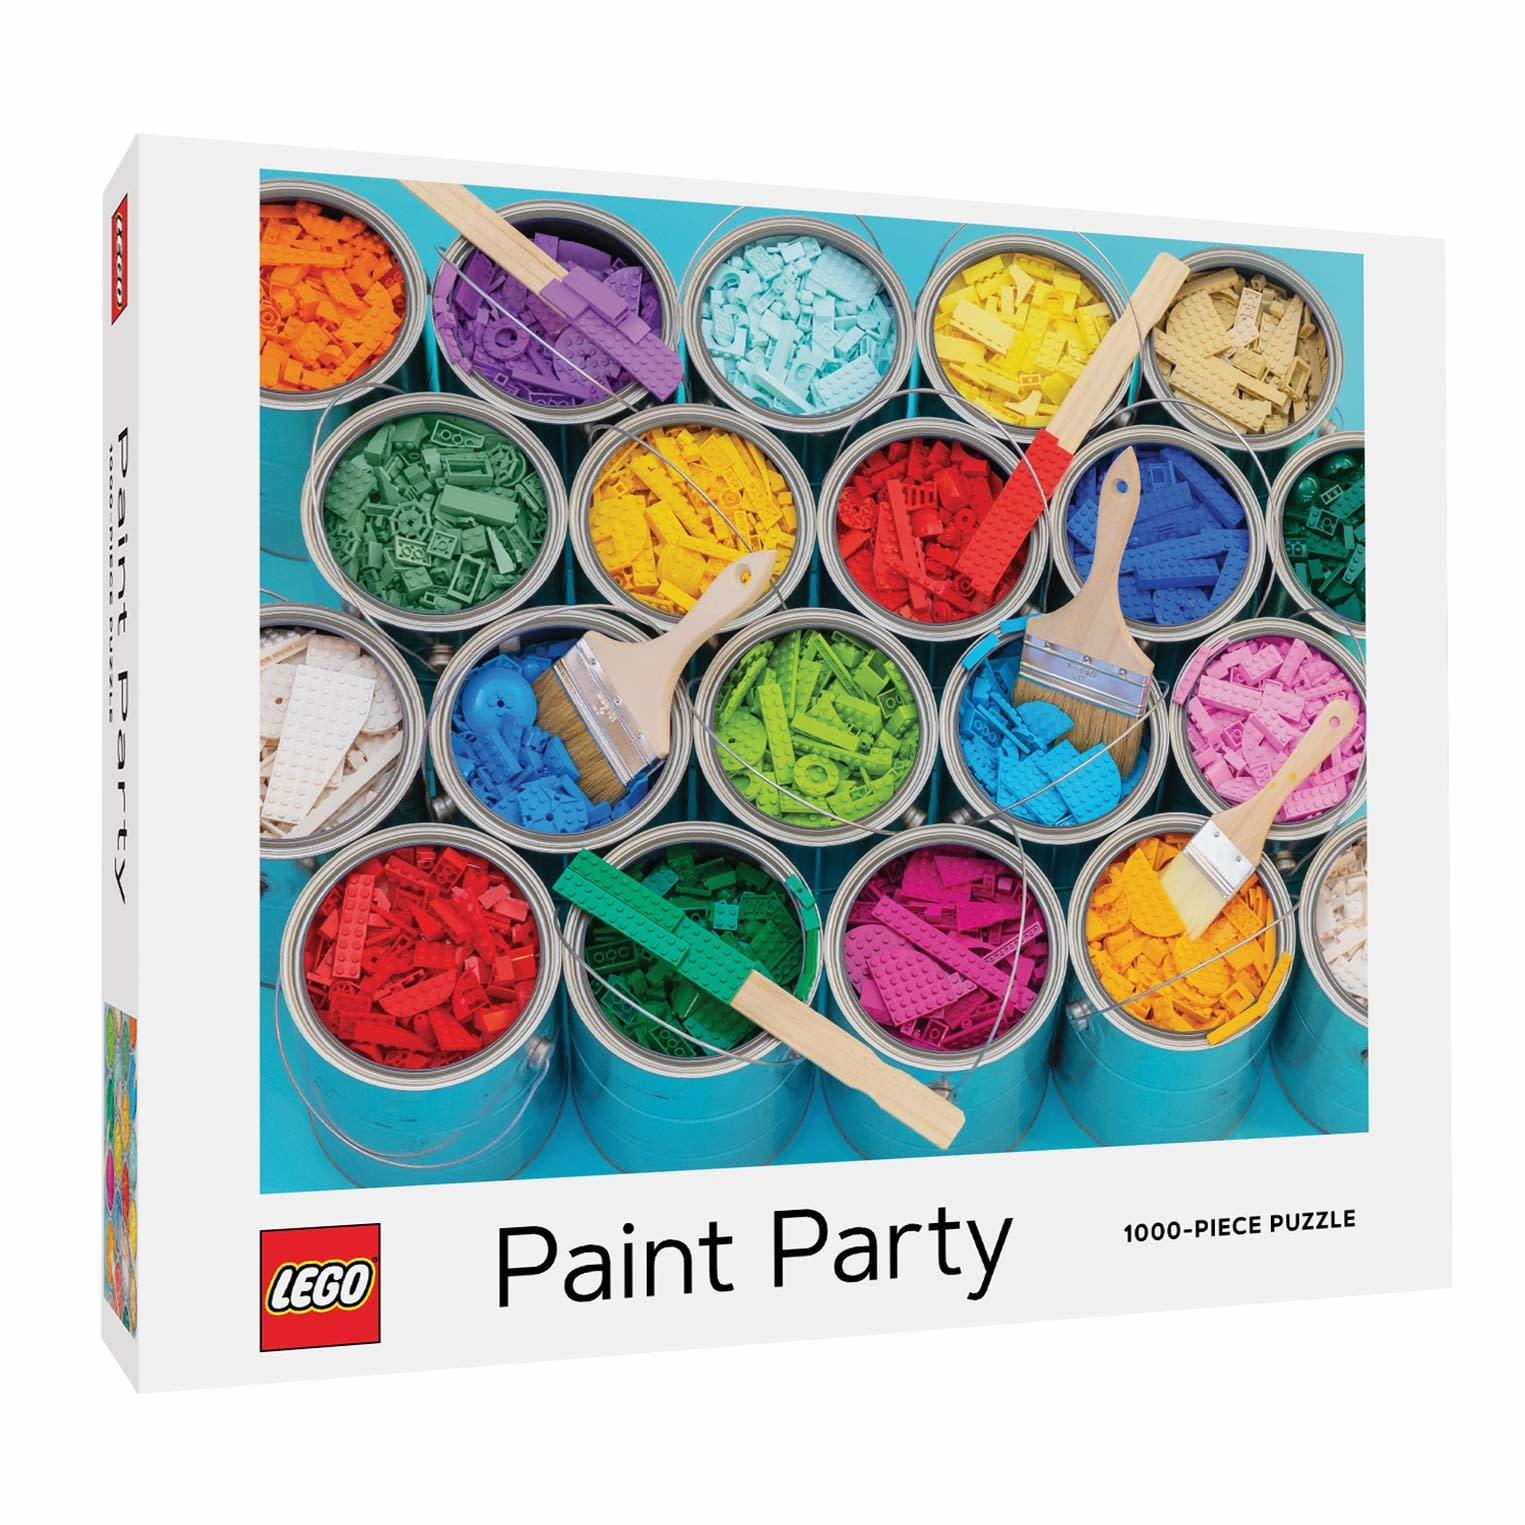 LEGO Paint Party Puzzle 1000 pc-1